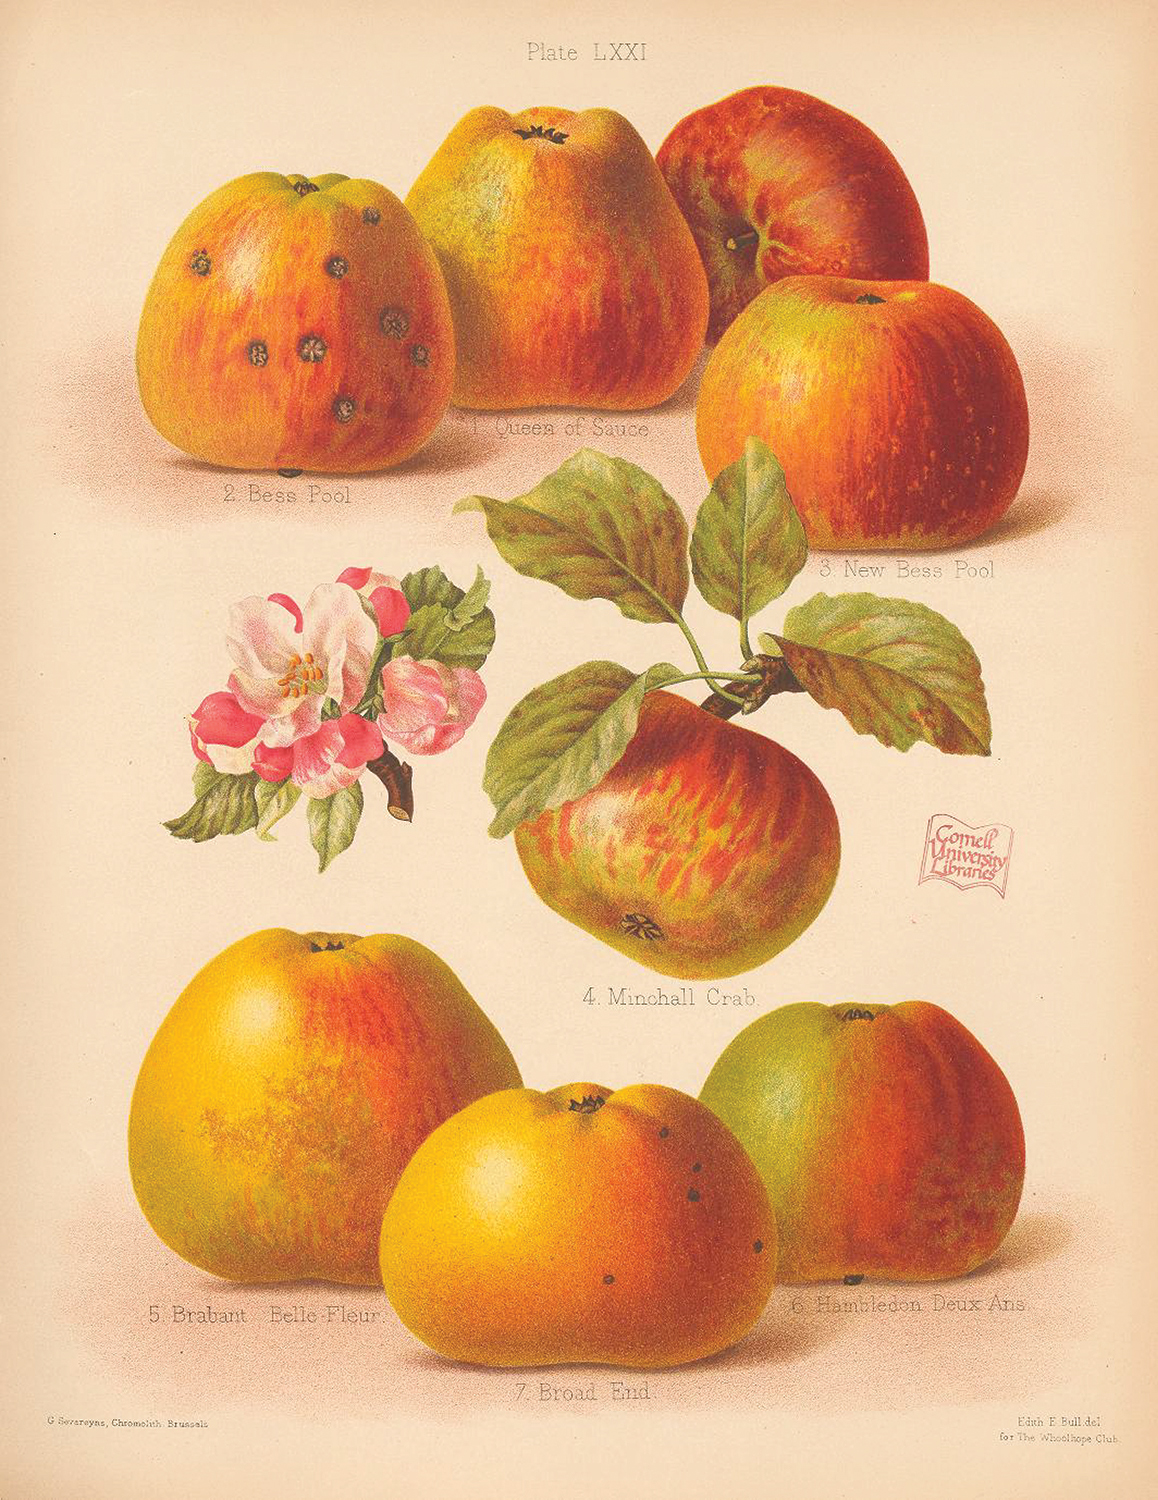 Illustration of various apple cultivars